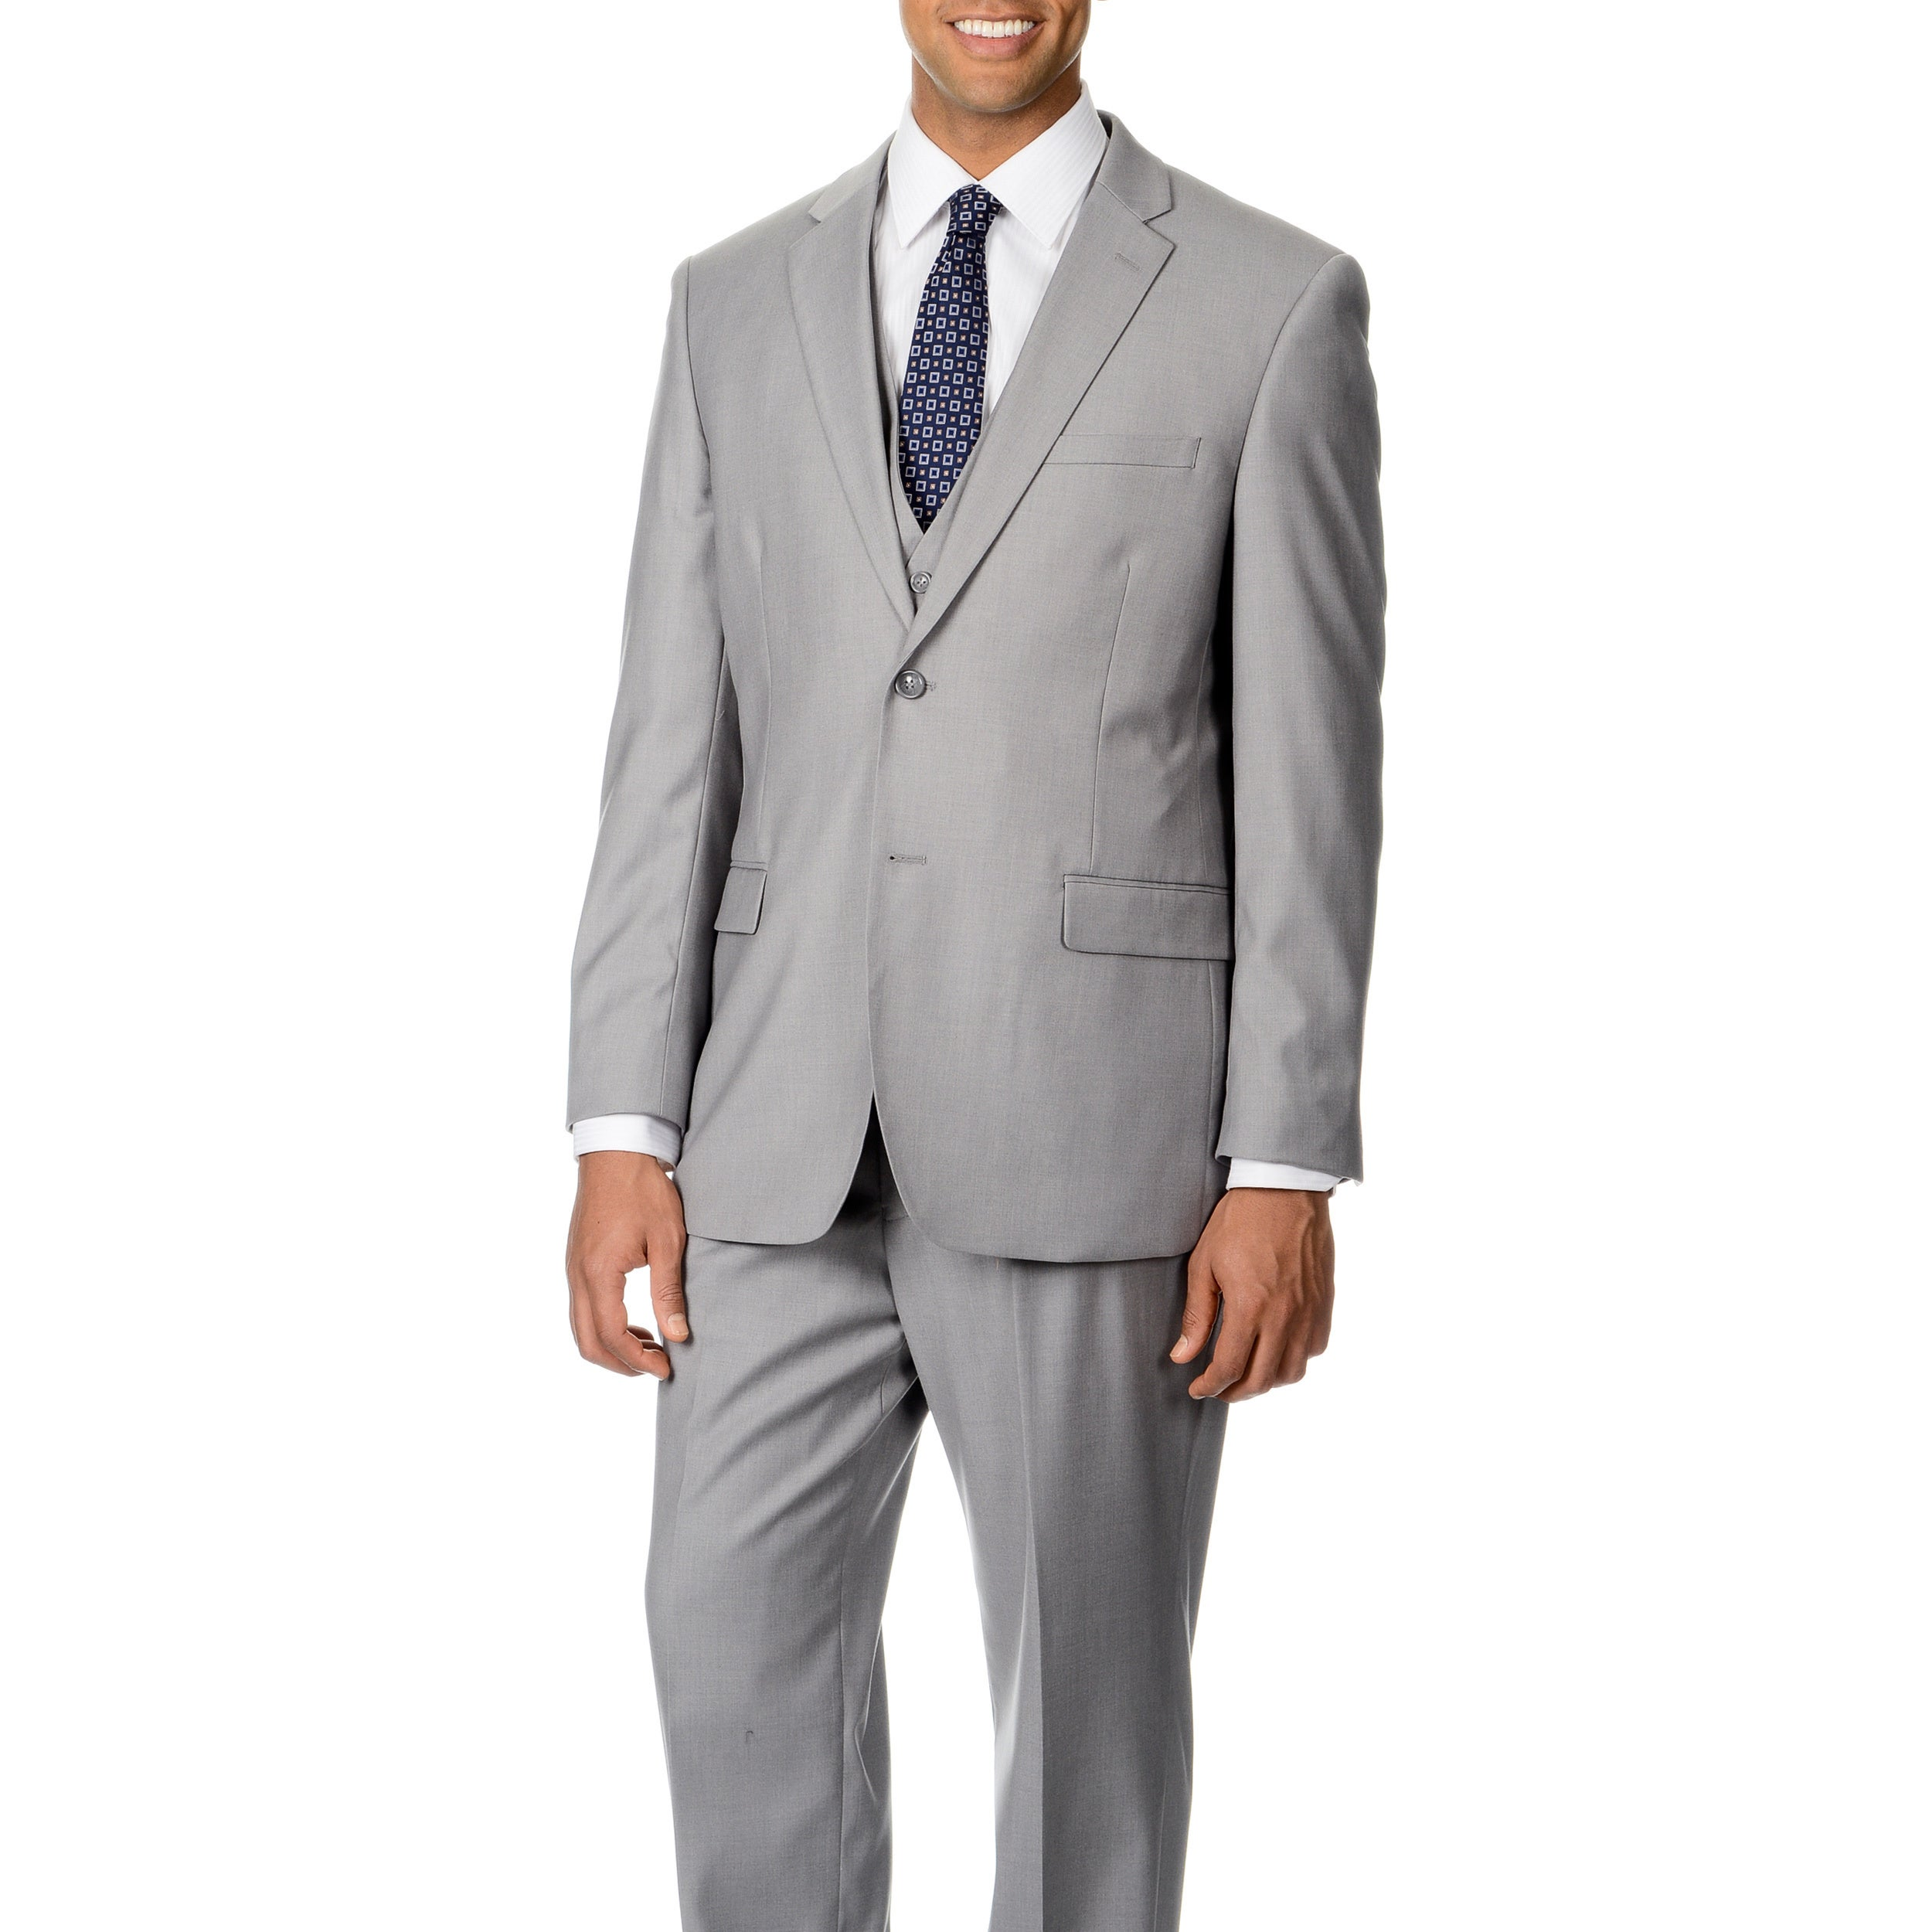 Suits & Suit Separates For Less | Overstock.com